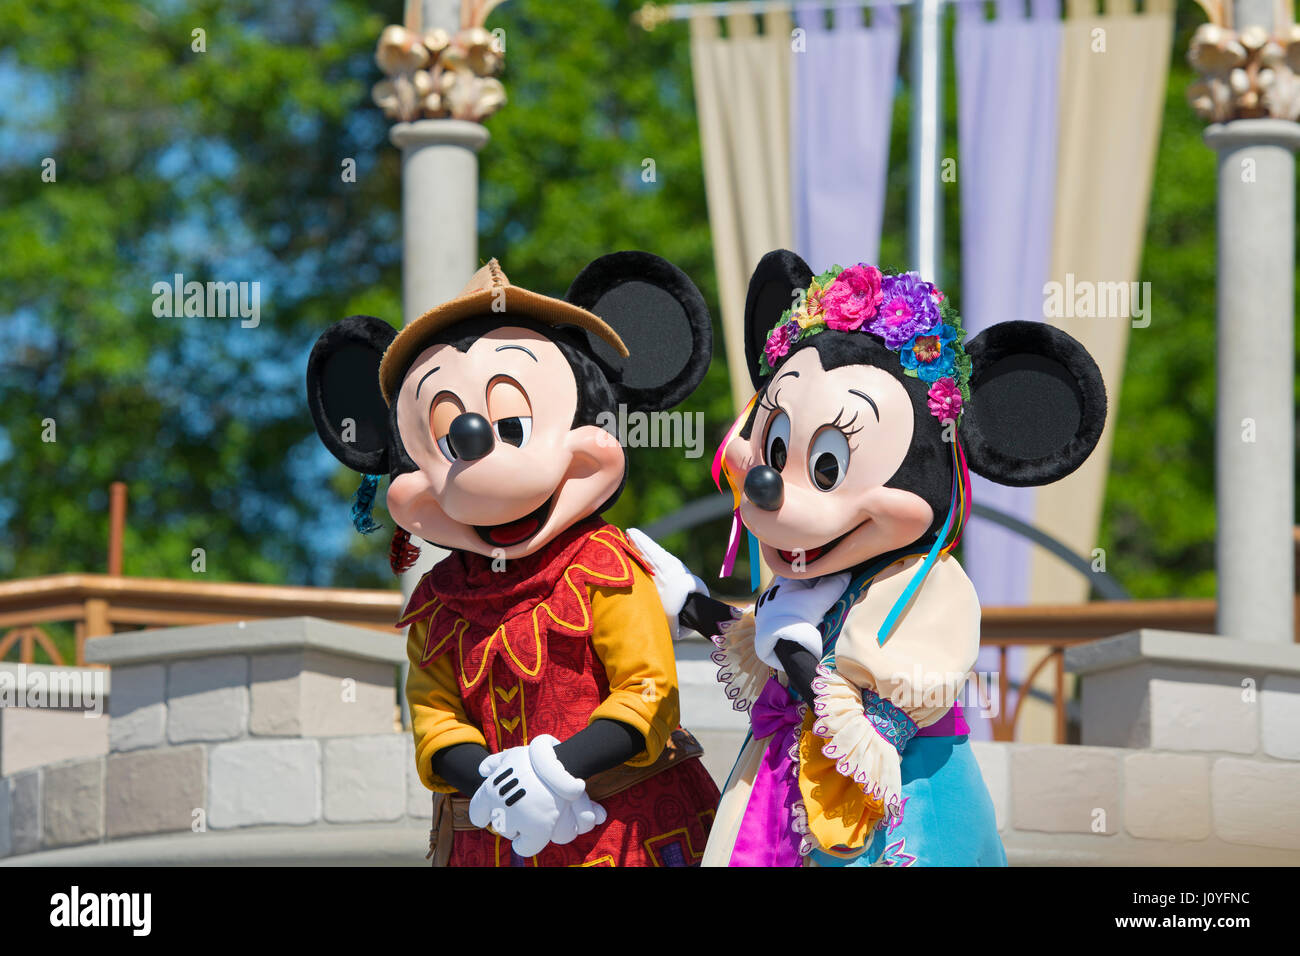 Mickey and Minnie Mouse, Mickey's Royal Friendship Faire show, Disney World, Orlando Florida - Stock Image